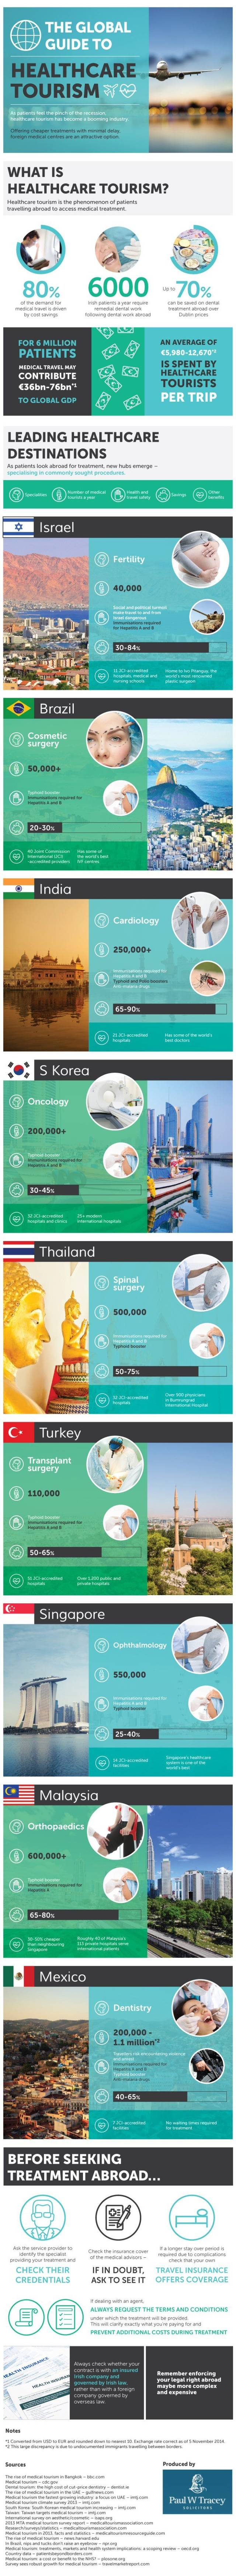 The global guide to healthcare tourism infographic